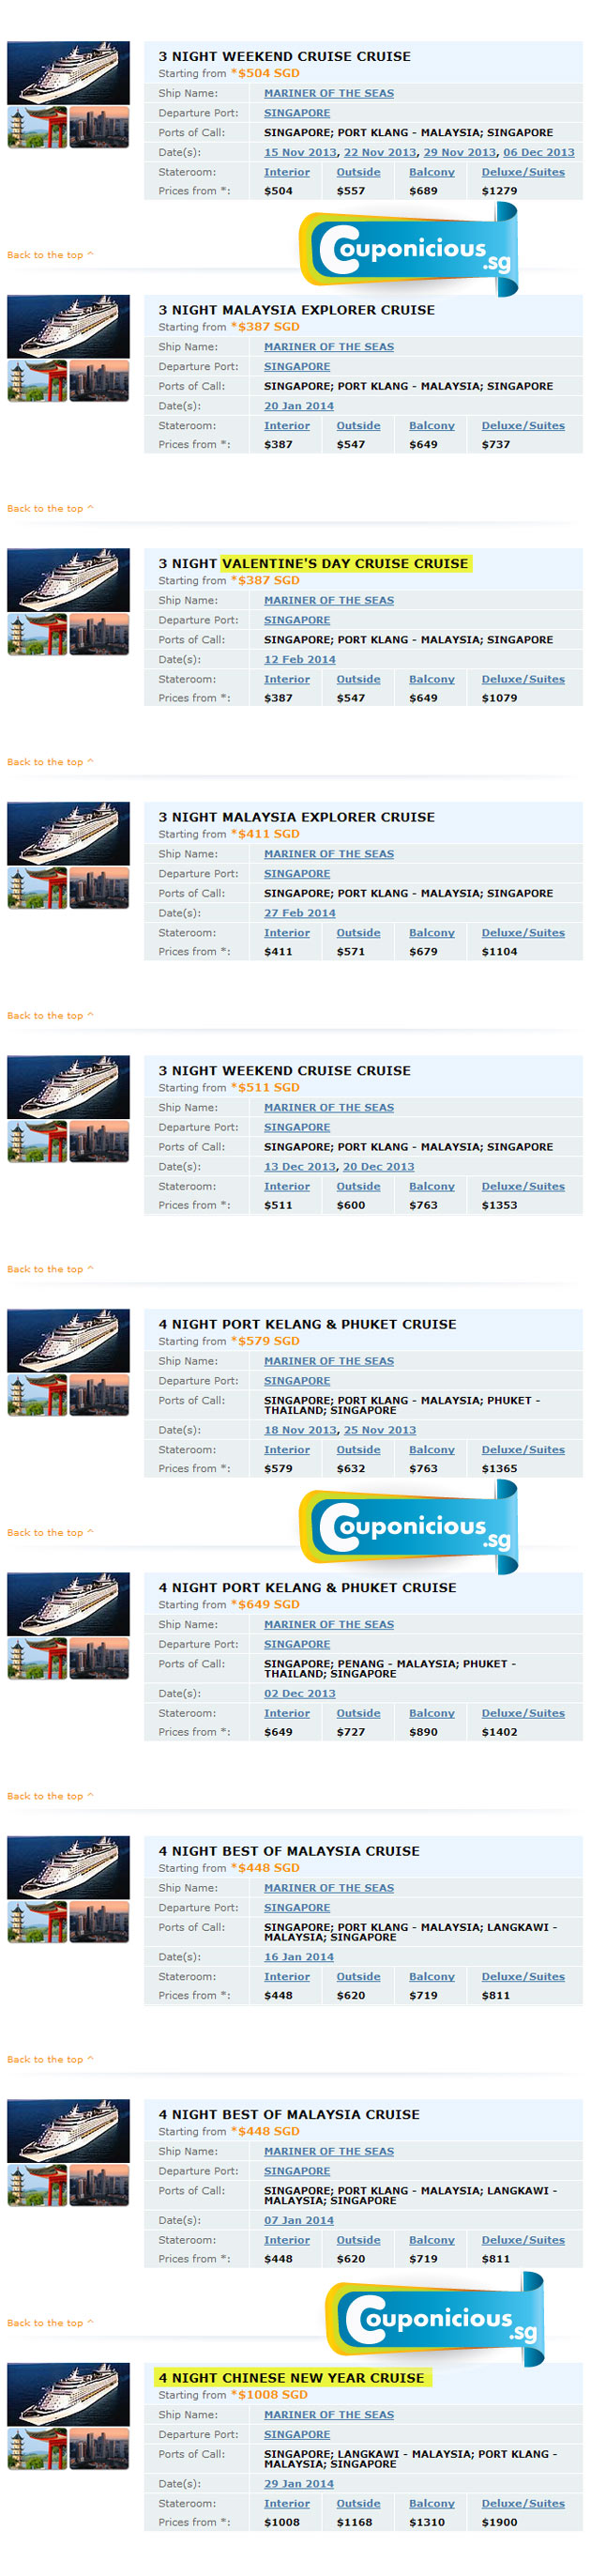 royal caribbean sailing schedule